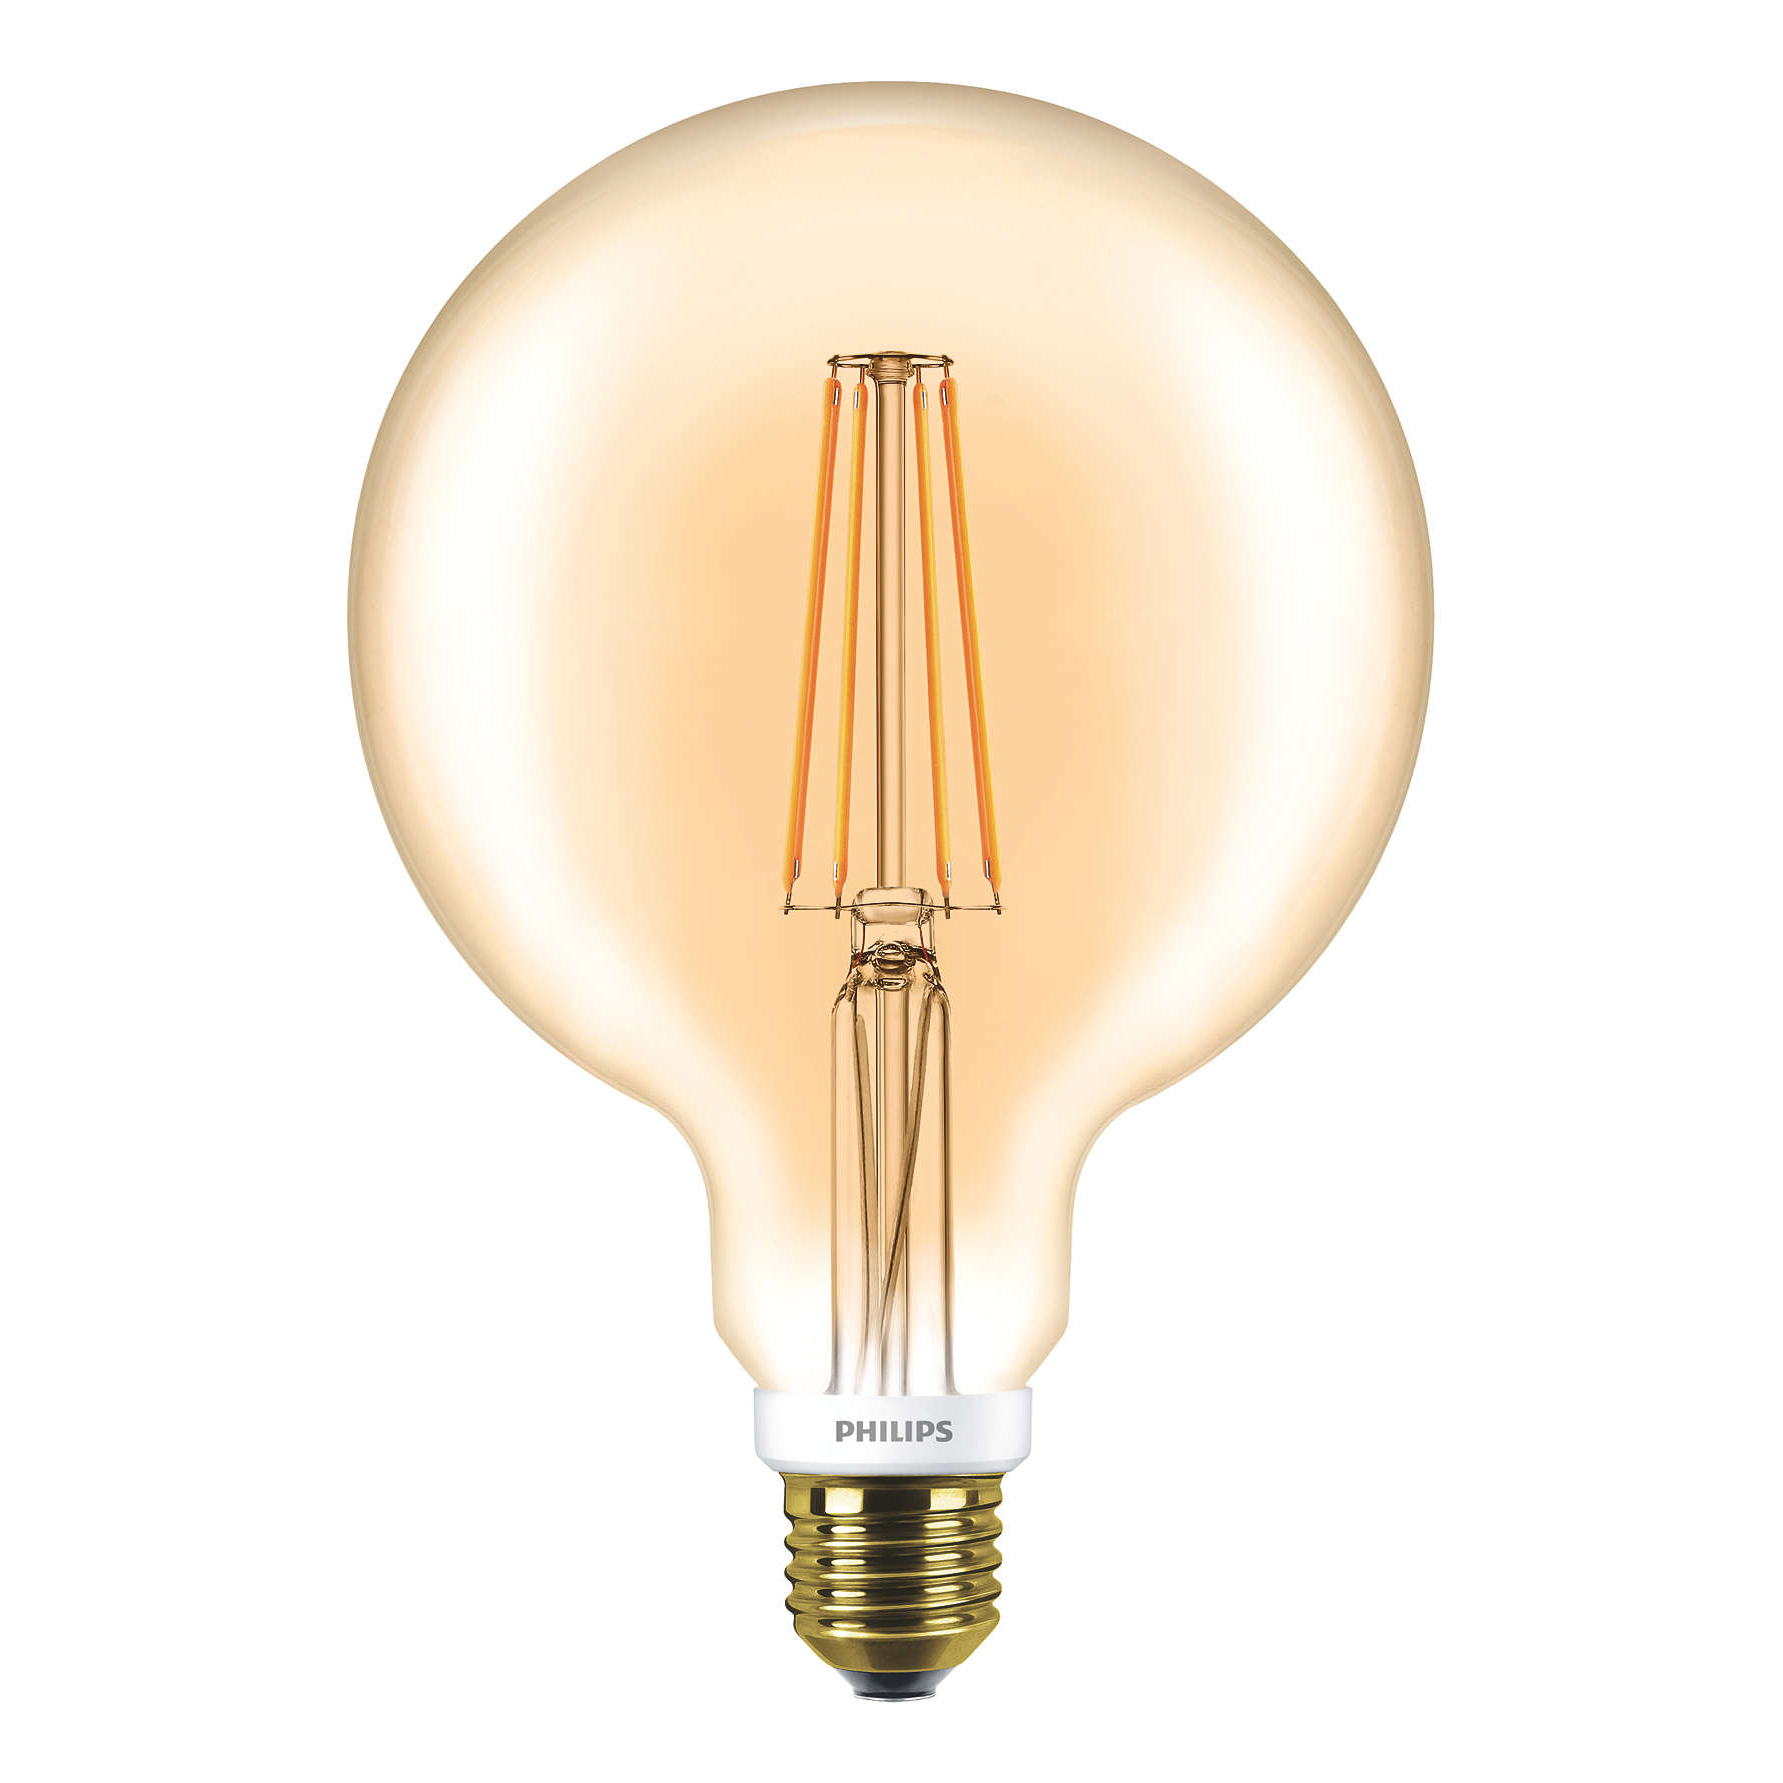 philips extra large led filament globe gold g120 e27 7w 2000k. Black Bedroom Furniture Sets. Home Design Ideas